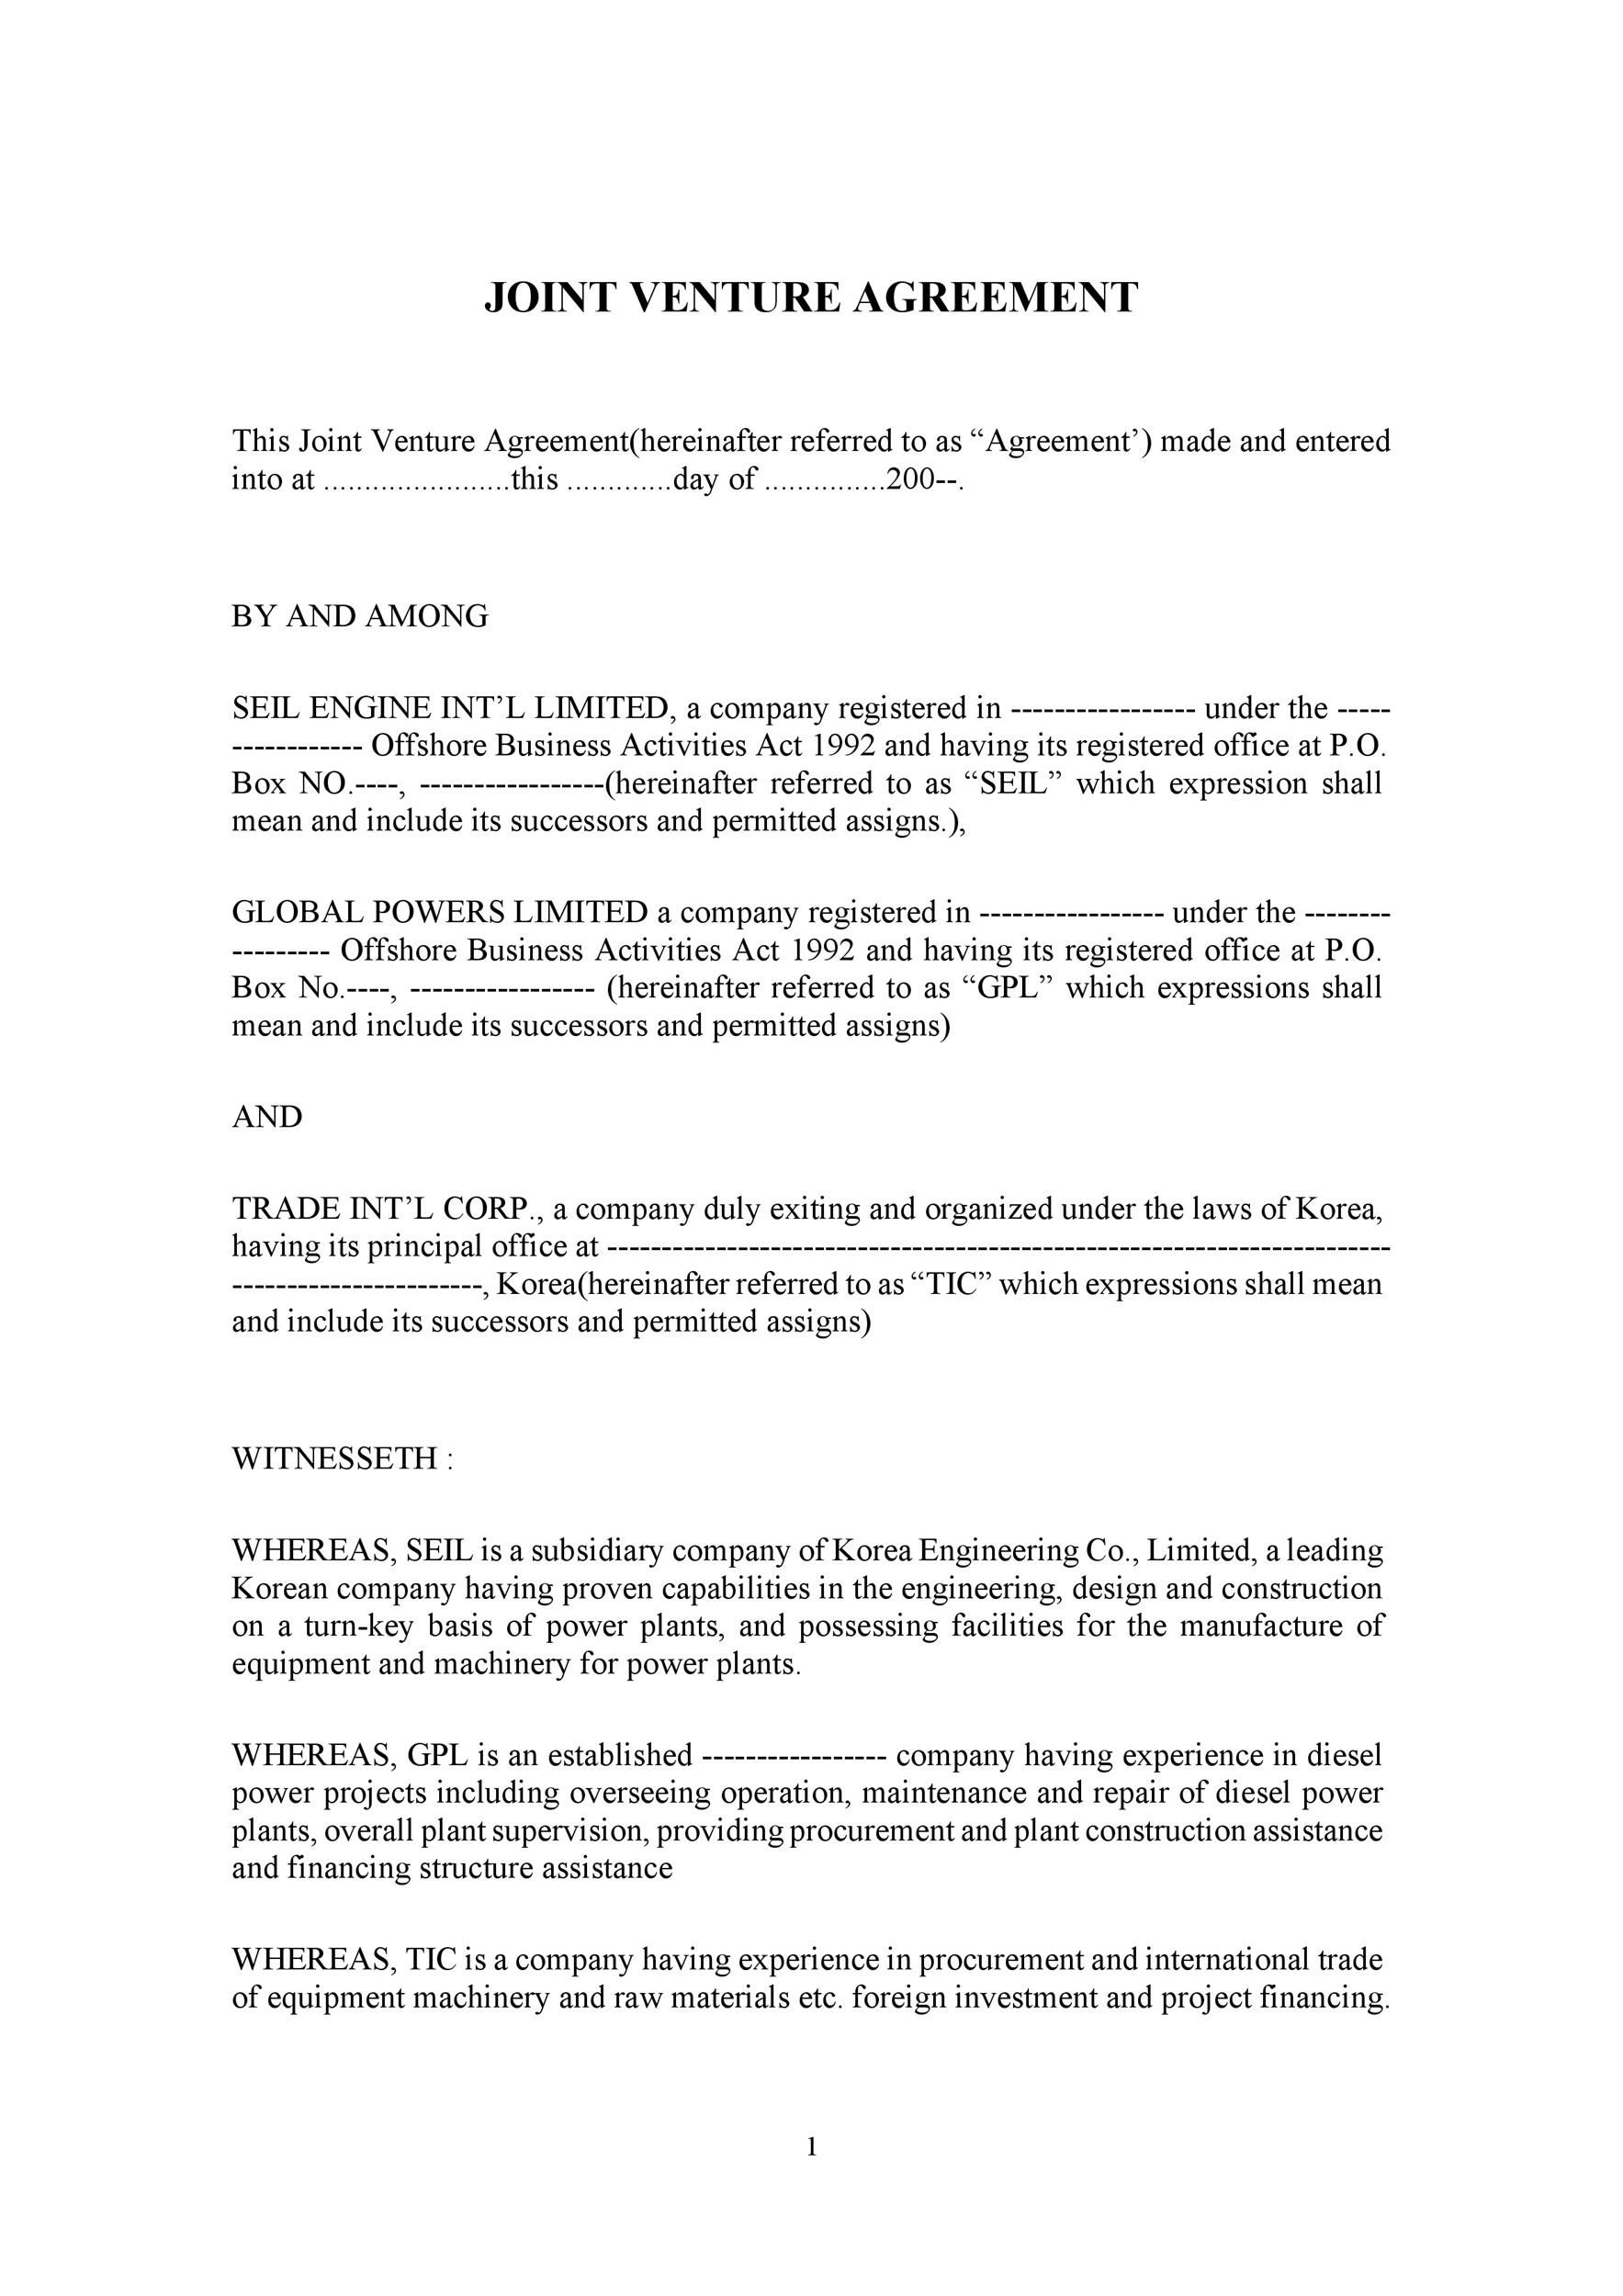 004 Outstanding Contractual Joint Venture Agreement Template Uk Image Full